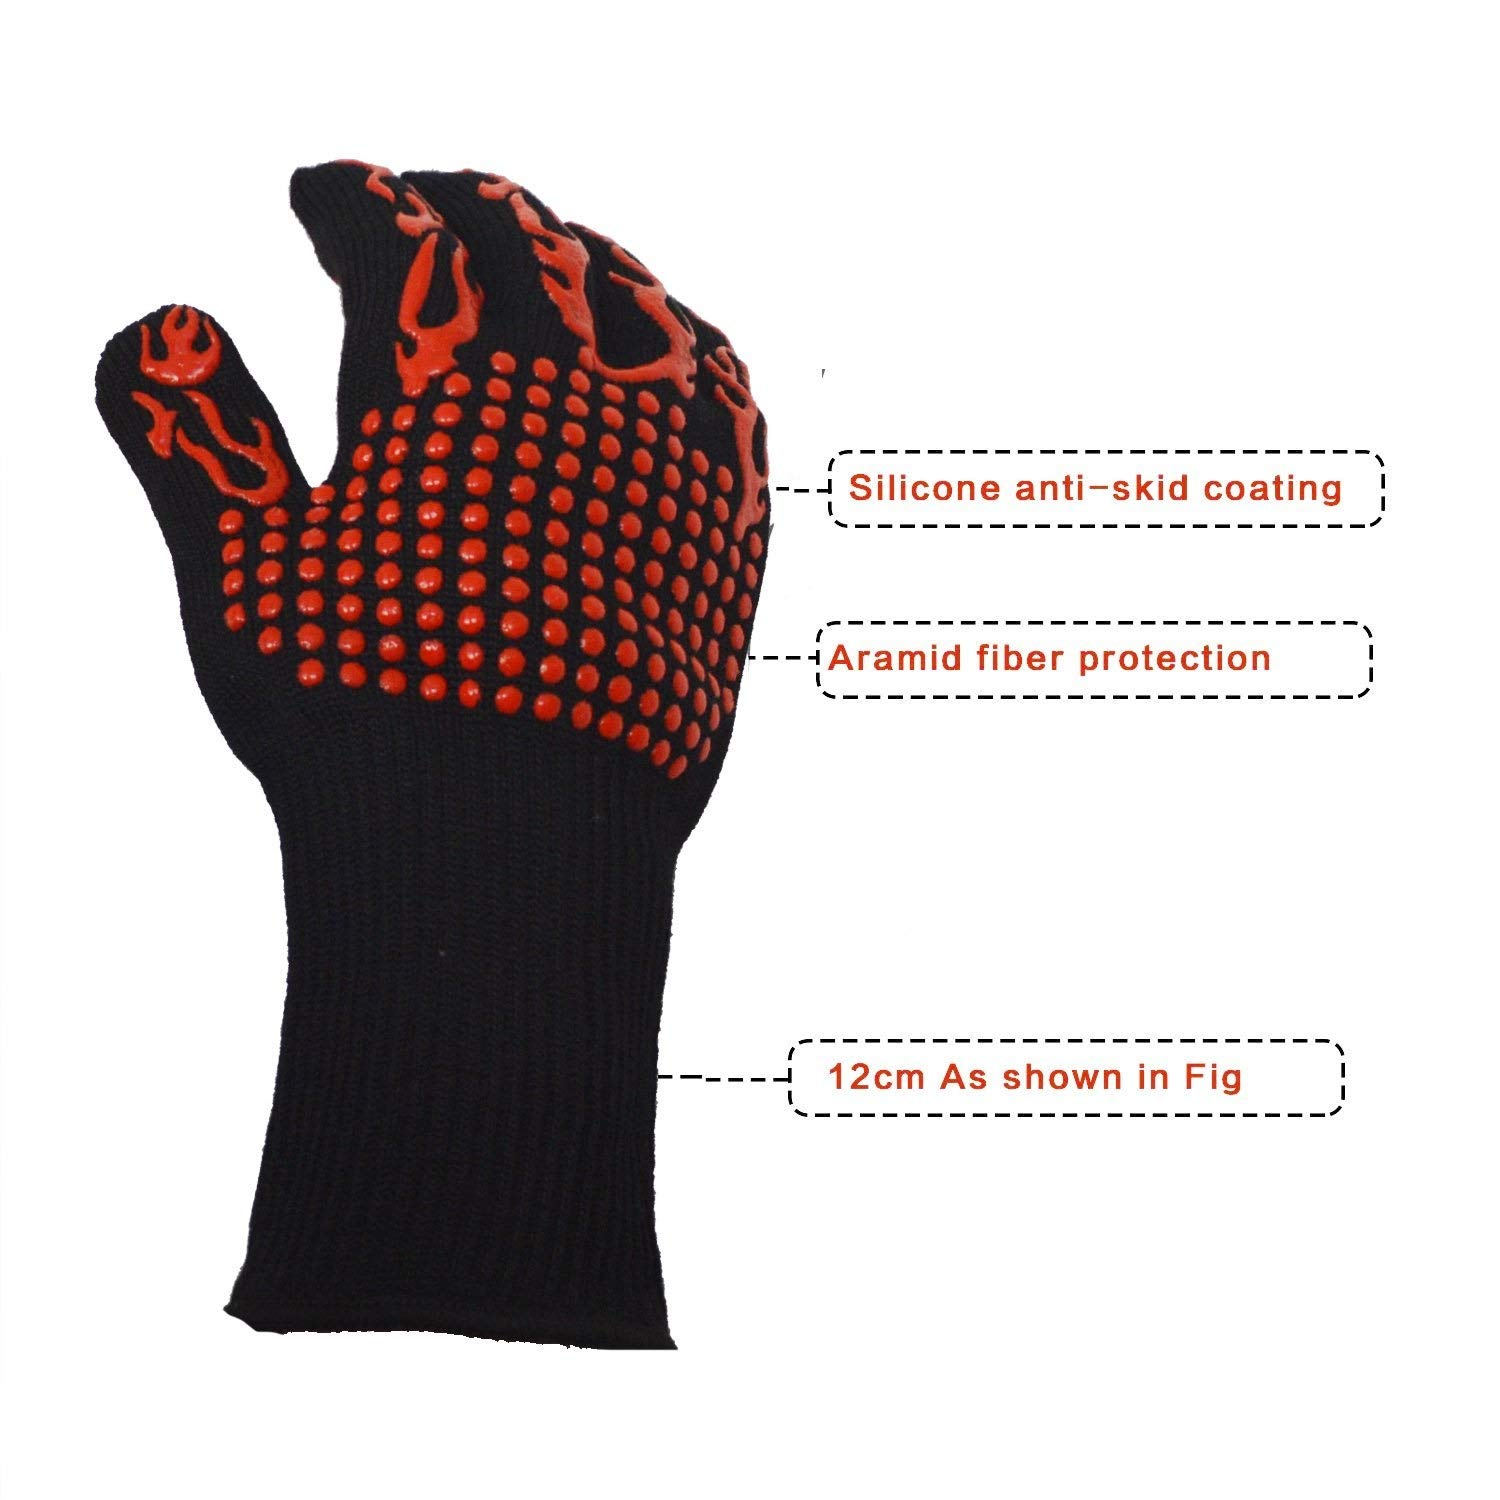 GROSSARTIG BBQ Gloves Oven Mitt Hand Protection from Grilling Kitchen Fireplace Grilling Double Layers Silicone CoatingHeat and Flame Resistant Gardening Home Gloves (Color : Red, Size : 2 Pairs) by GROSSARTIG